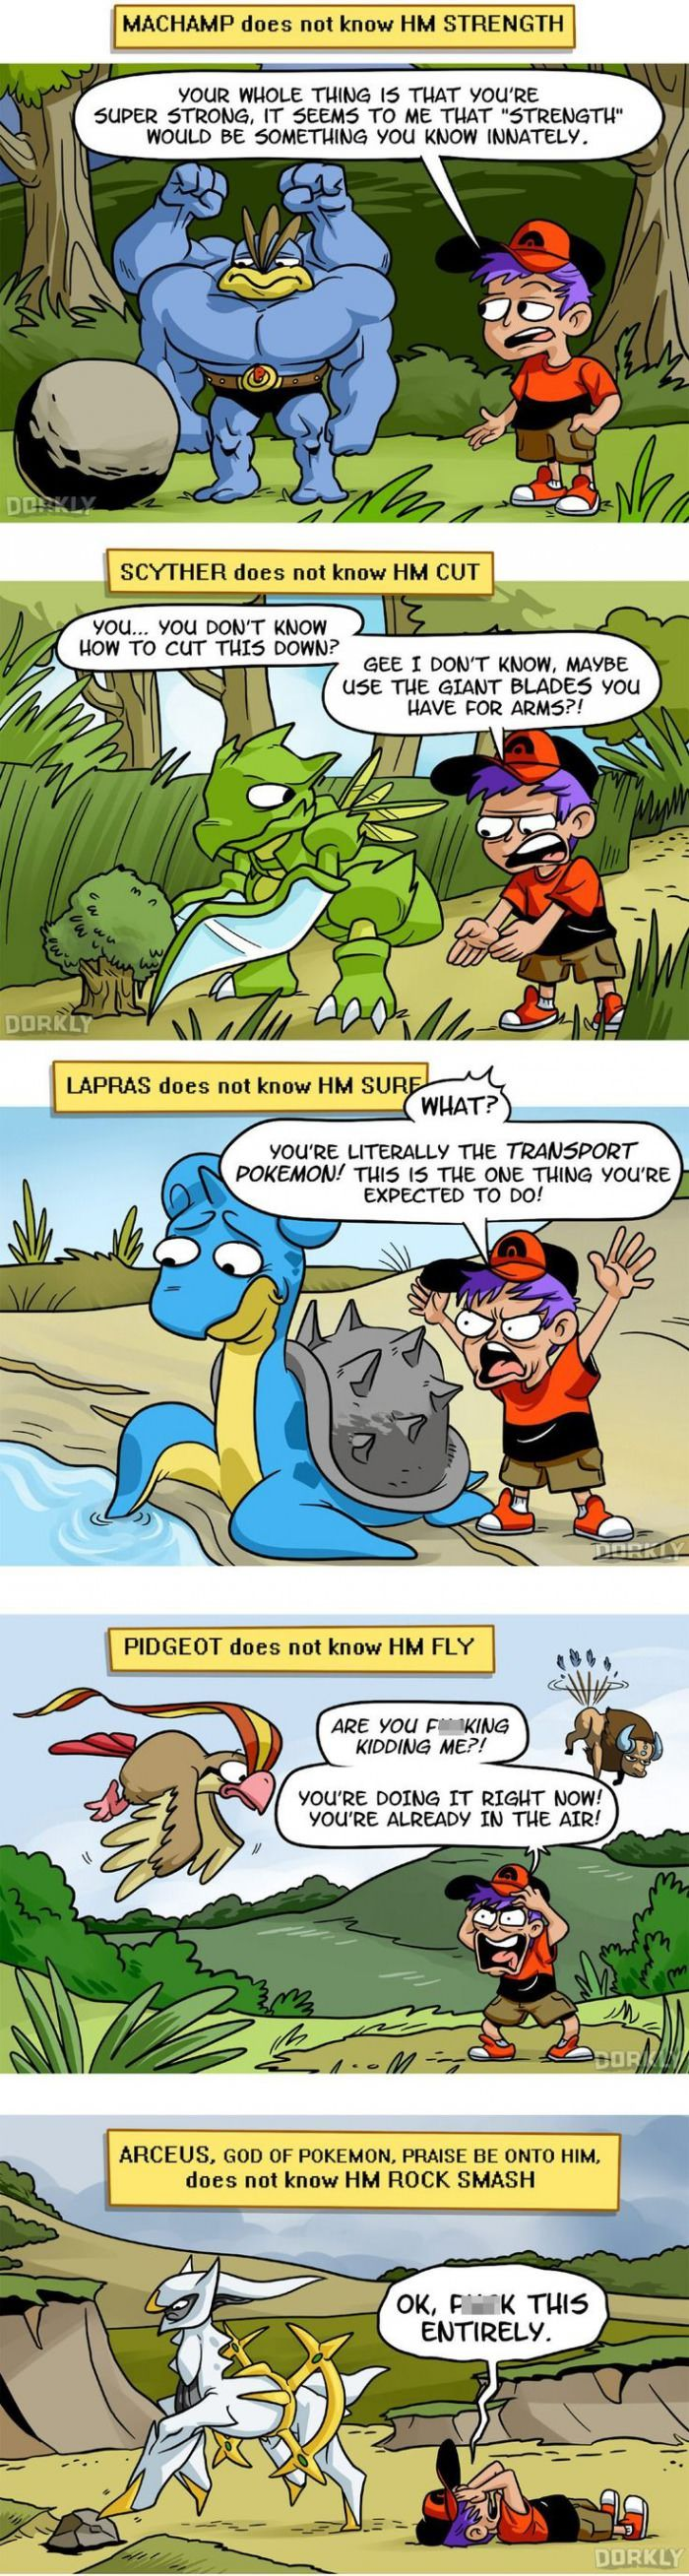 It's a hard Pokemon world lol